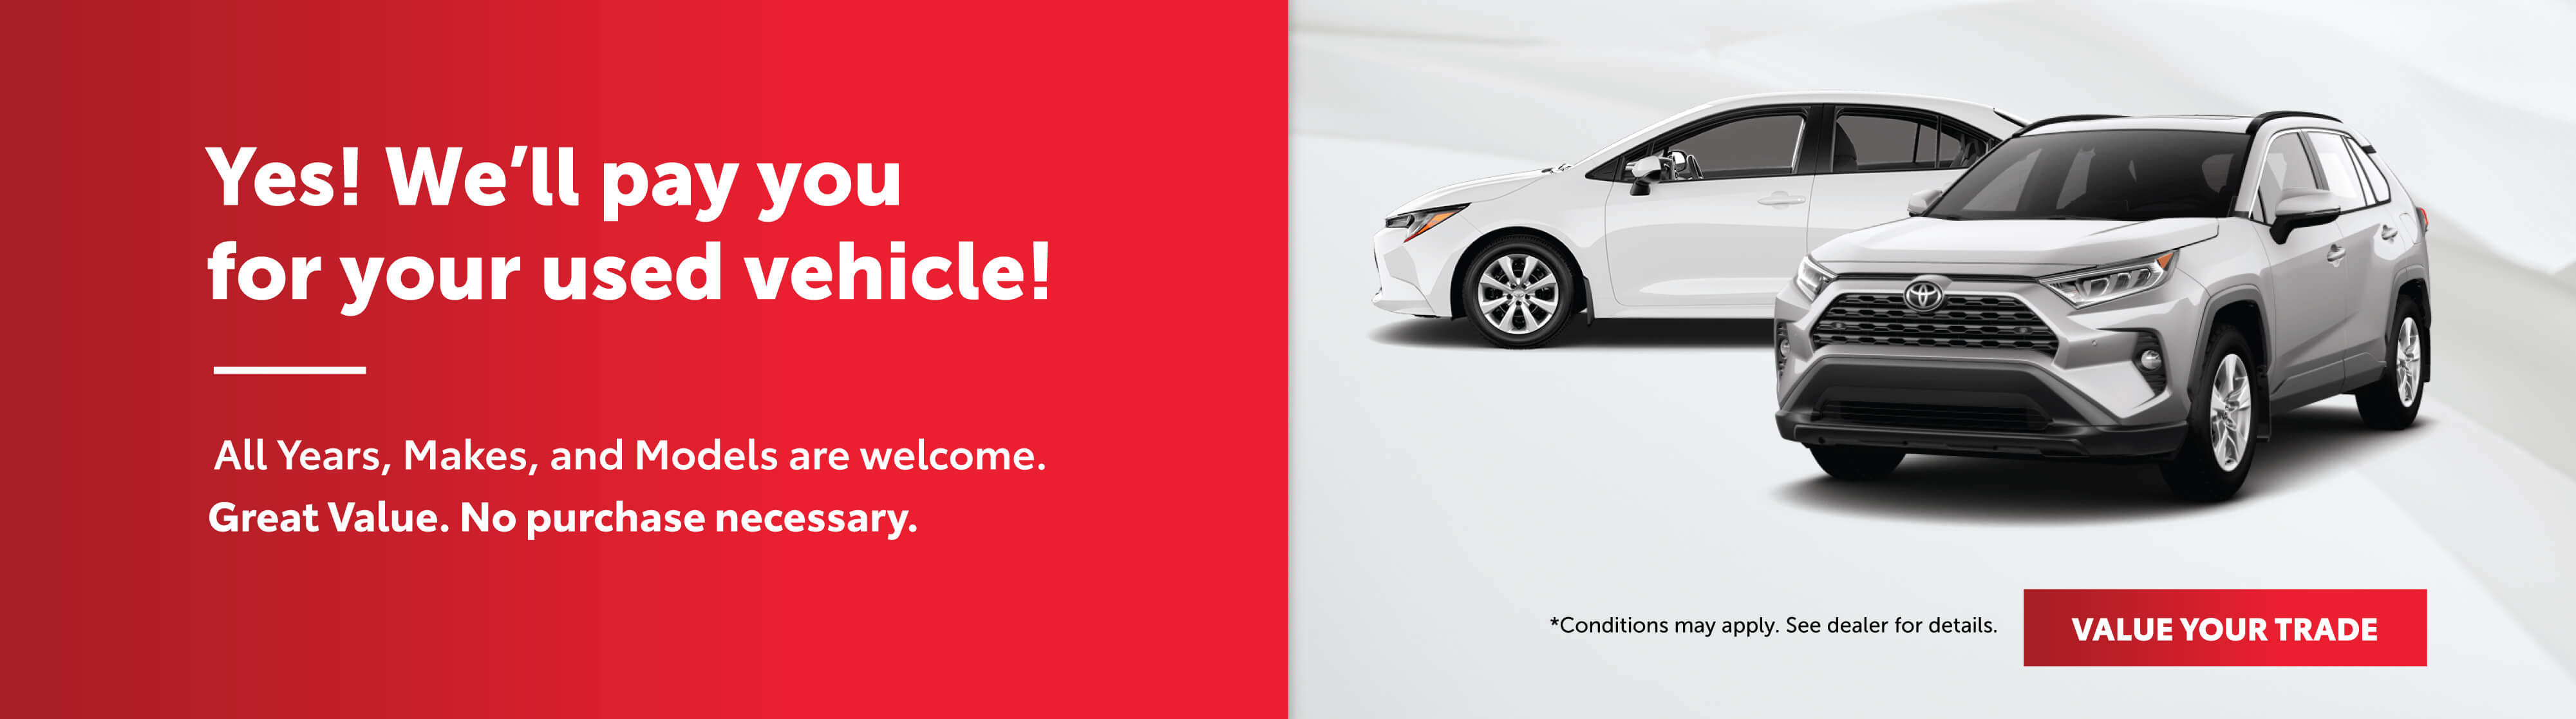 Georgetown Toyota Trade in offer